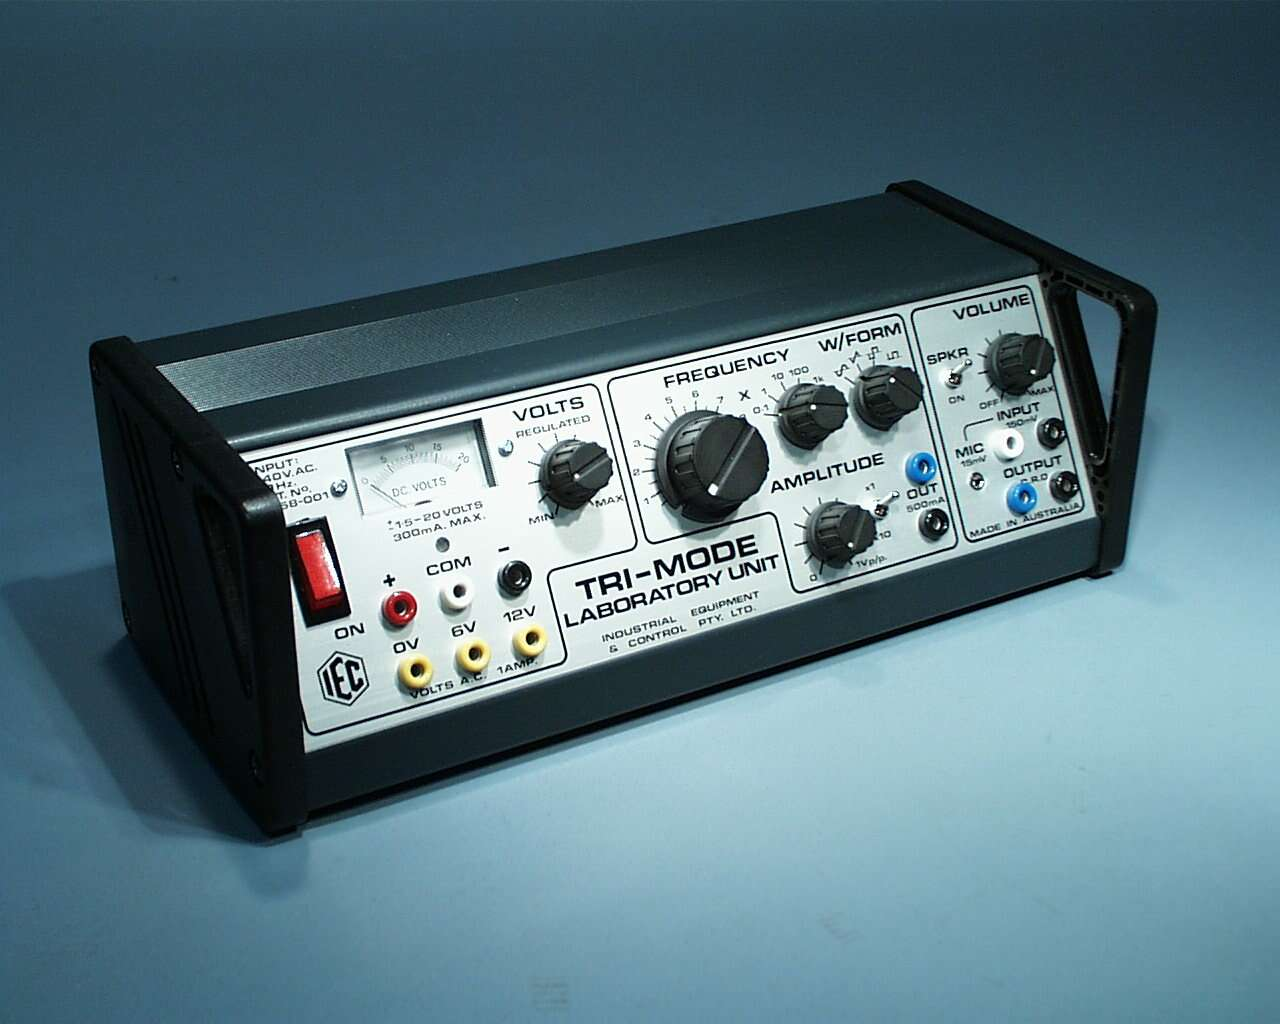 Signal Generator, Tri-Mode (power supply and audio amp)